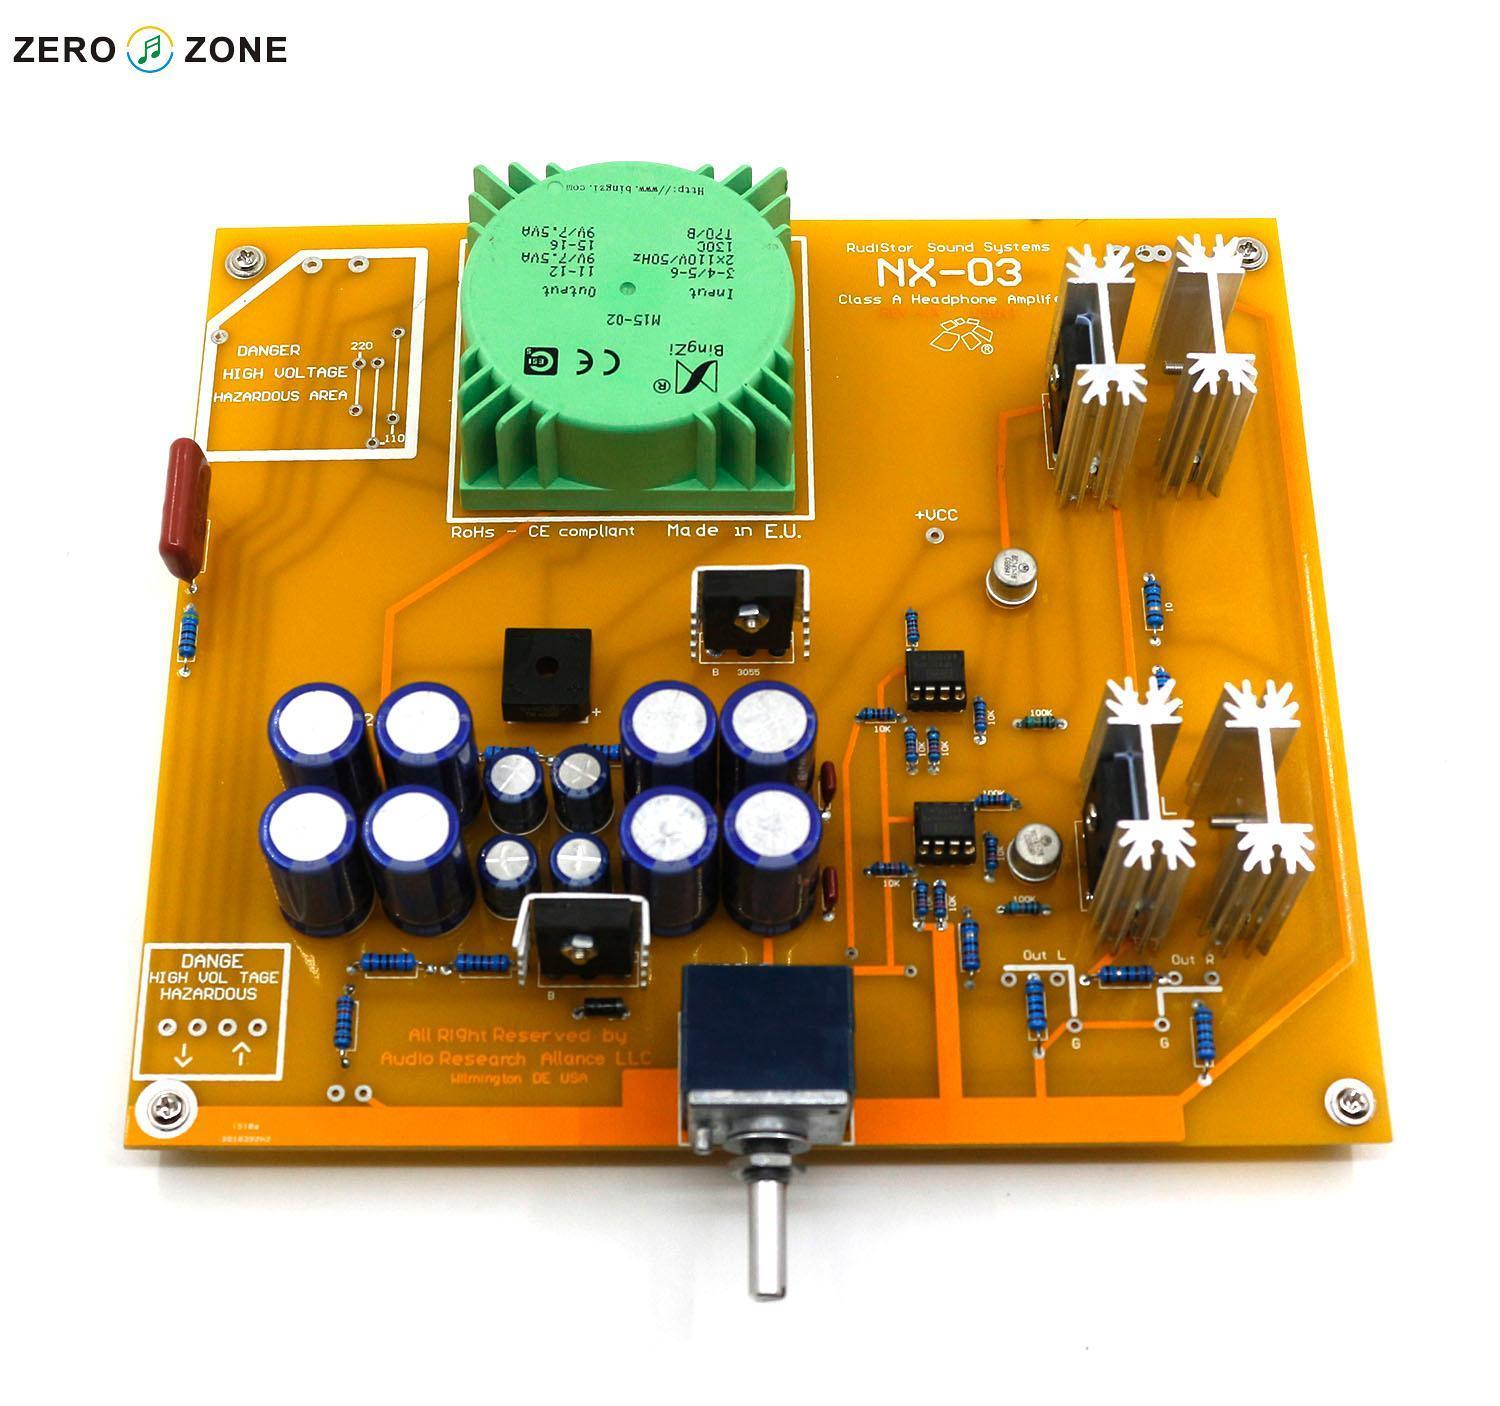 Gzlozone Nx 03 Headphone Amplifier Kit Base On Italy Rudistor Nx03 How To Build Class A Amp Diy In Circuits From Consumer Electronics Alibaba Group